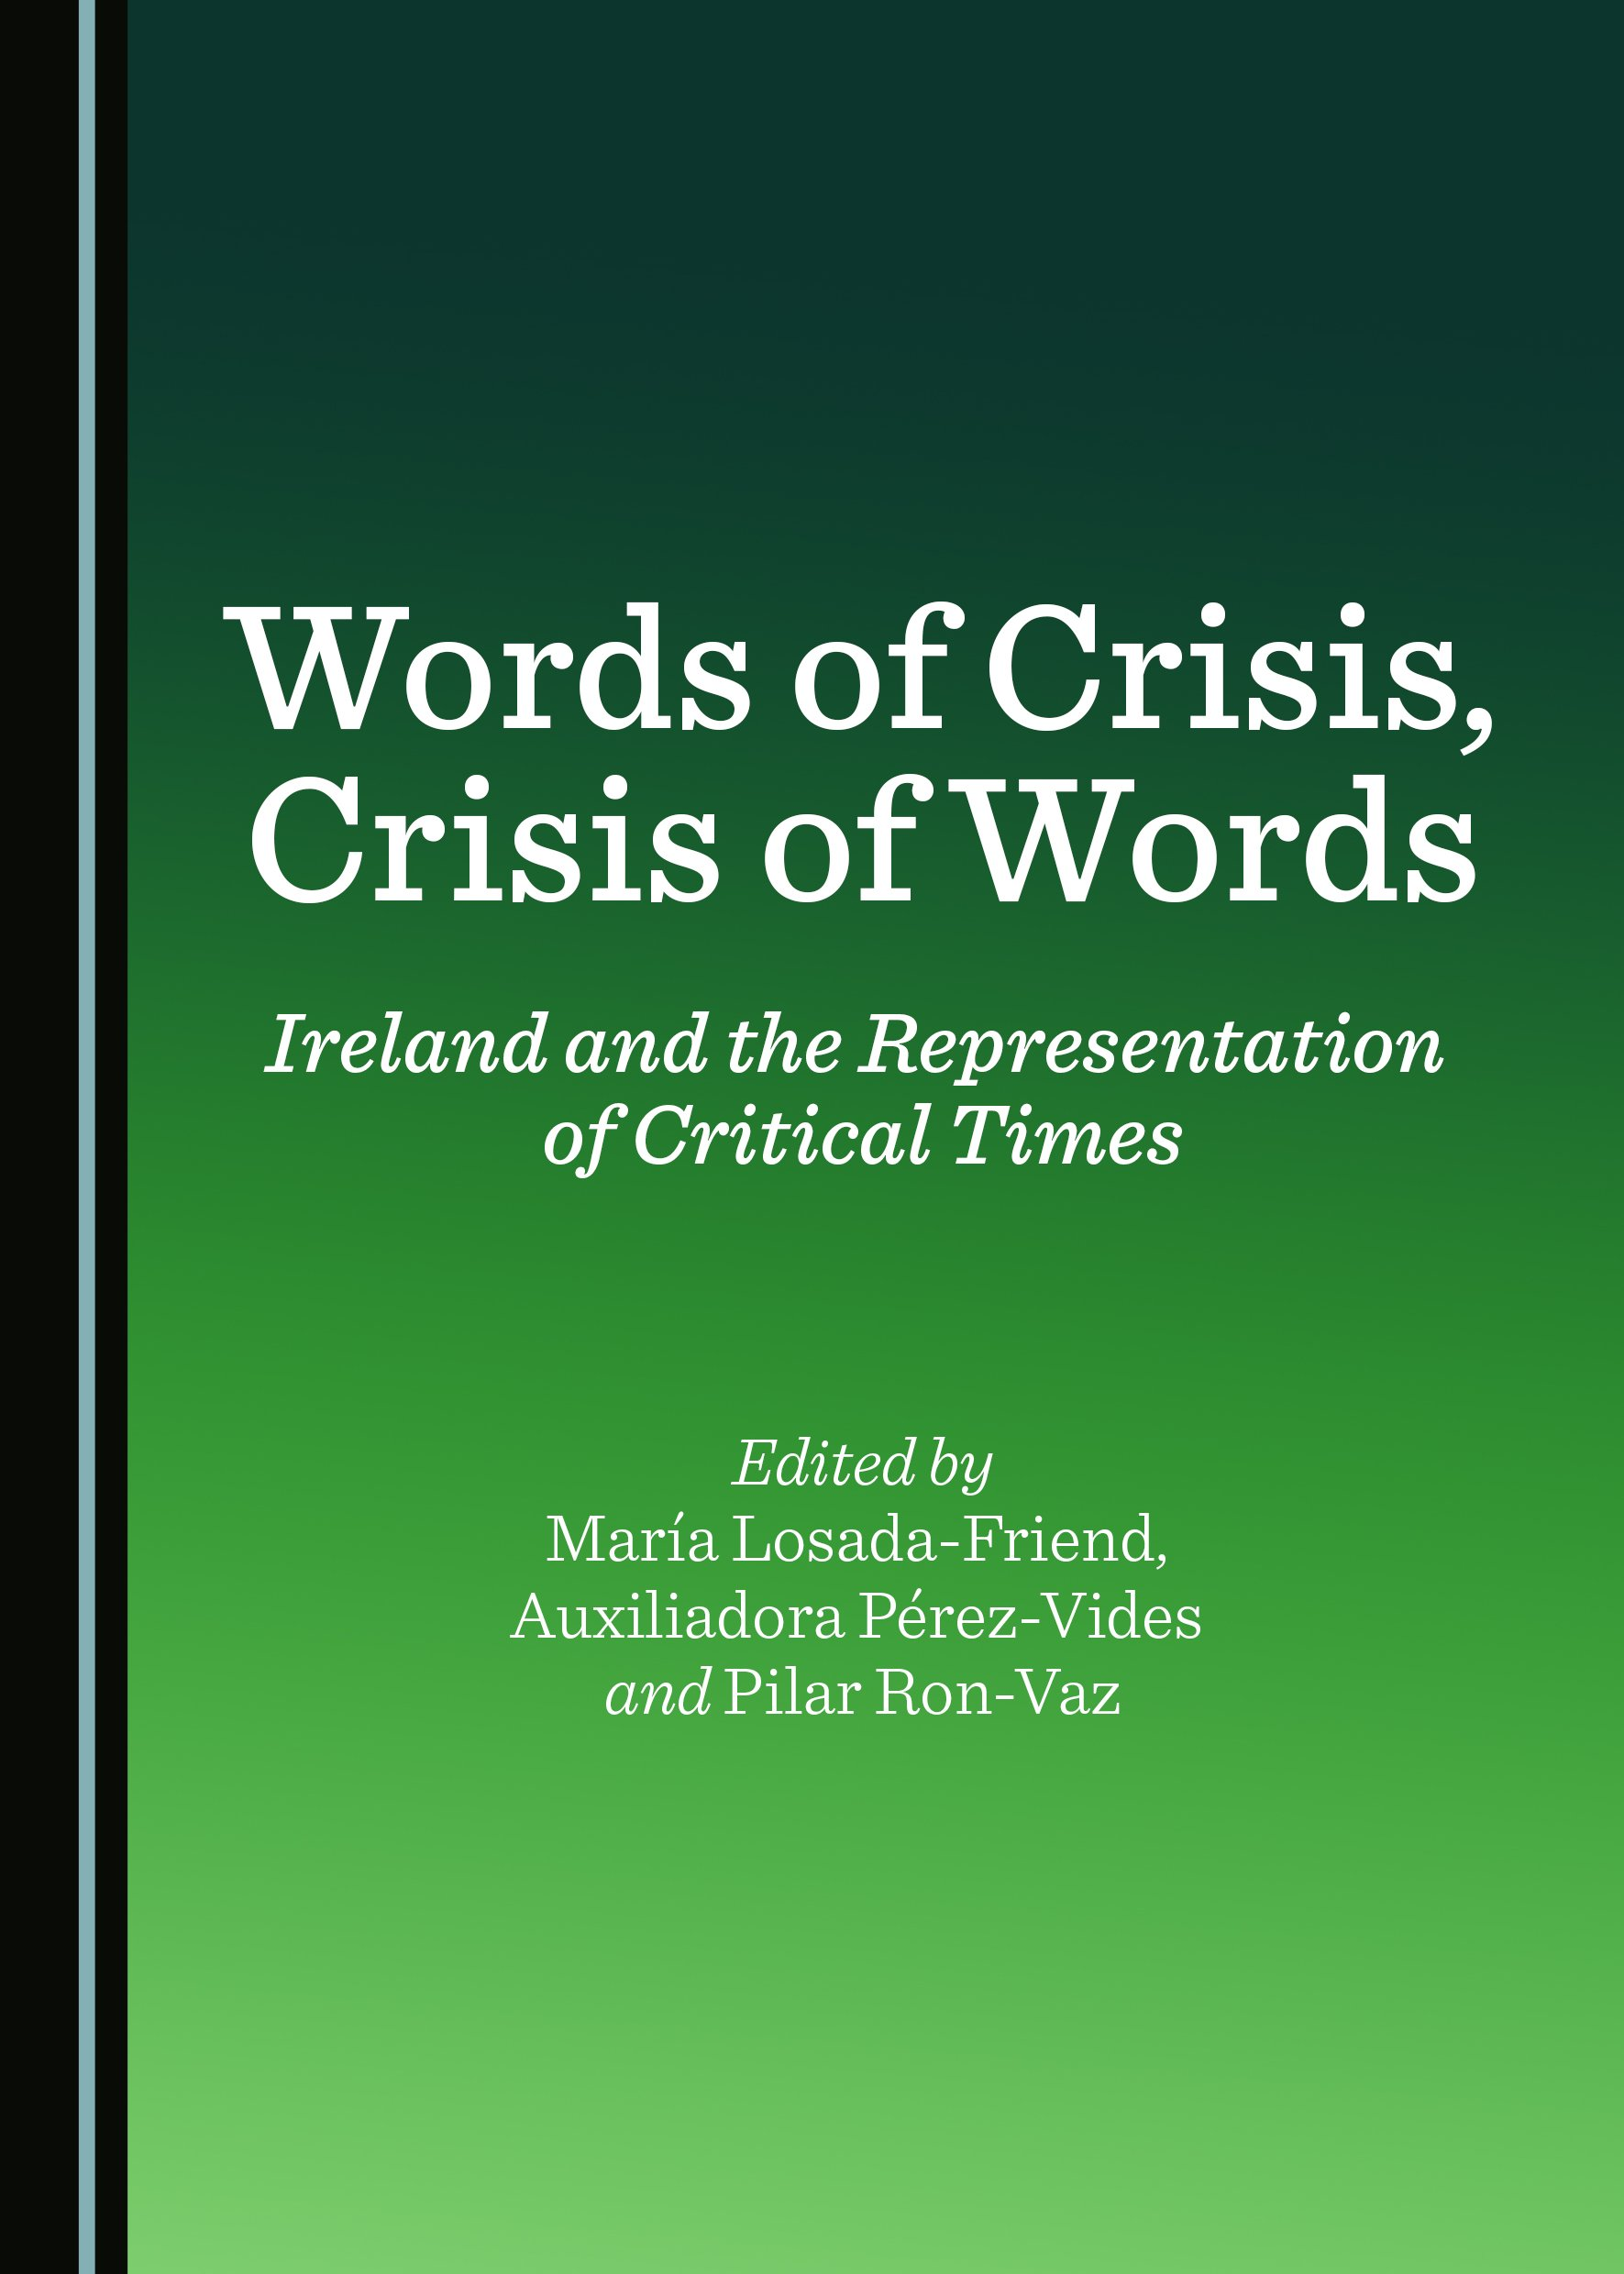 Words of Crisis, Crisis of Words: Ireland and the Representation of Critical Times